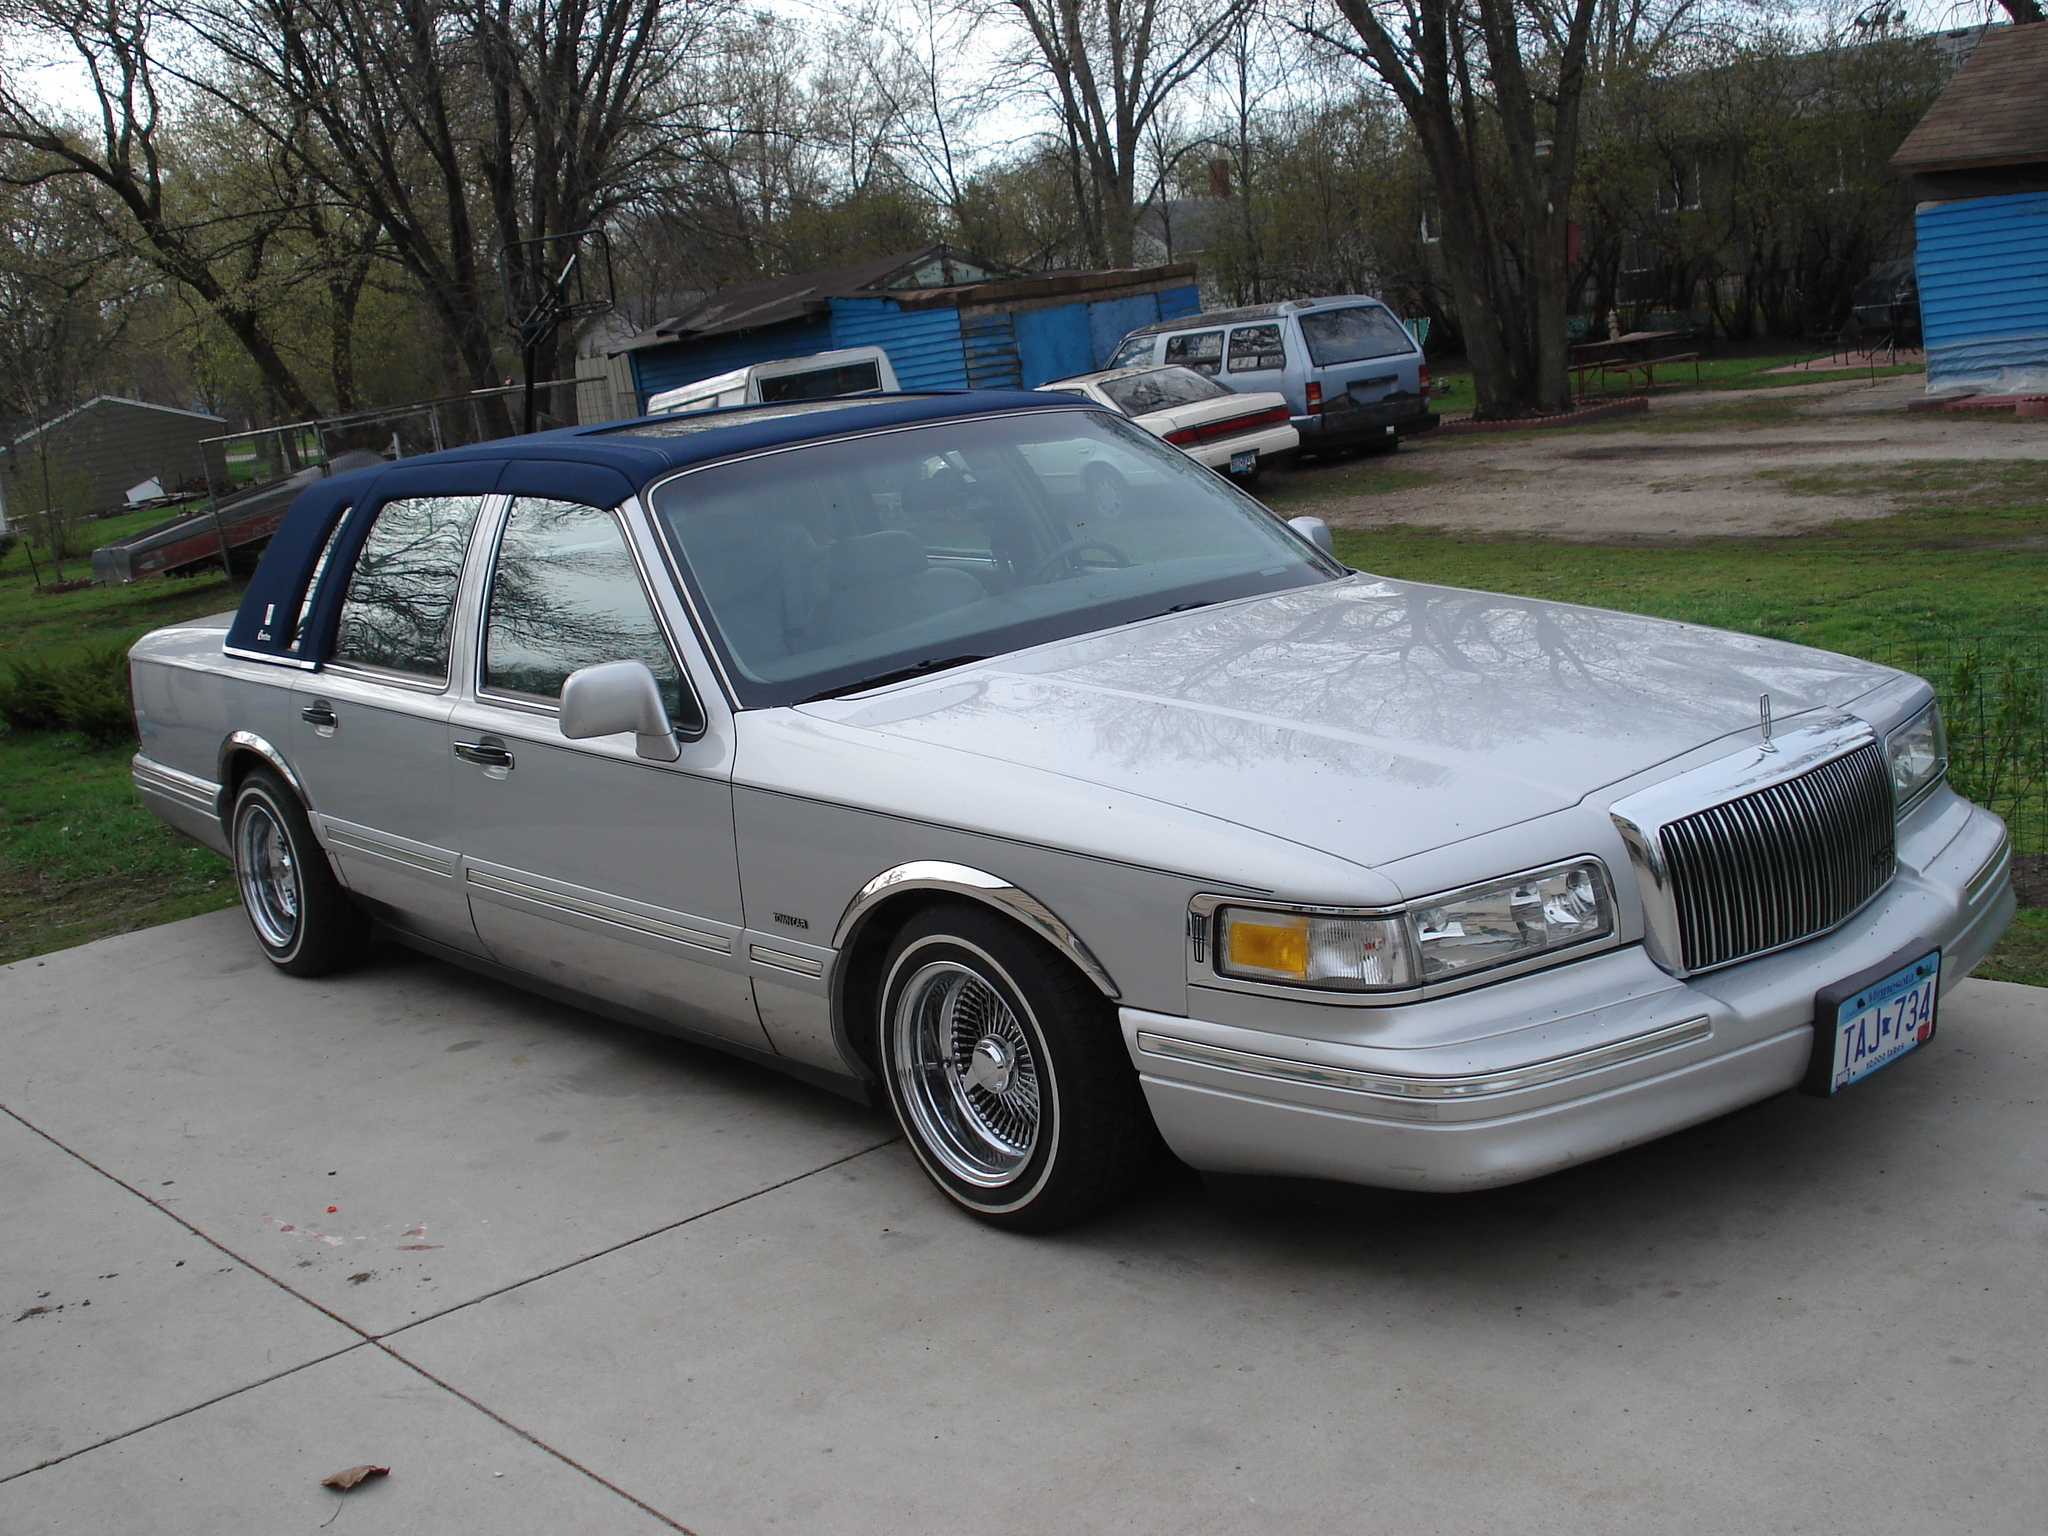 Carlit0 1997 Lincoln Town Car Specs Photos Modification Info At